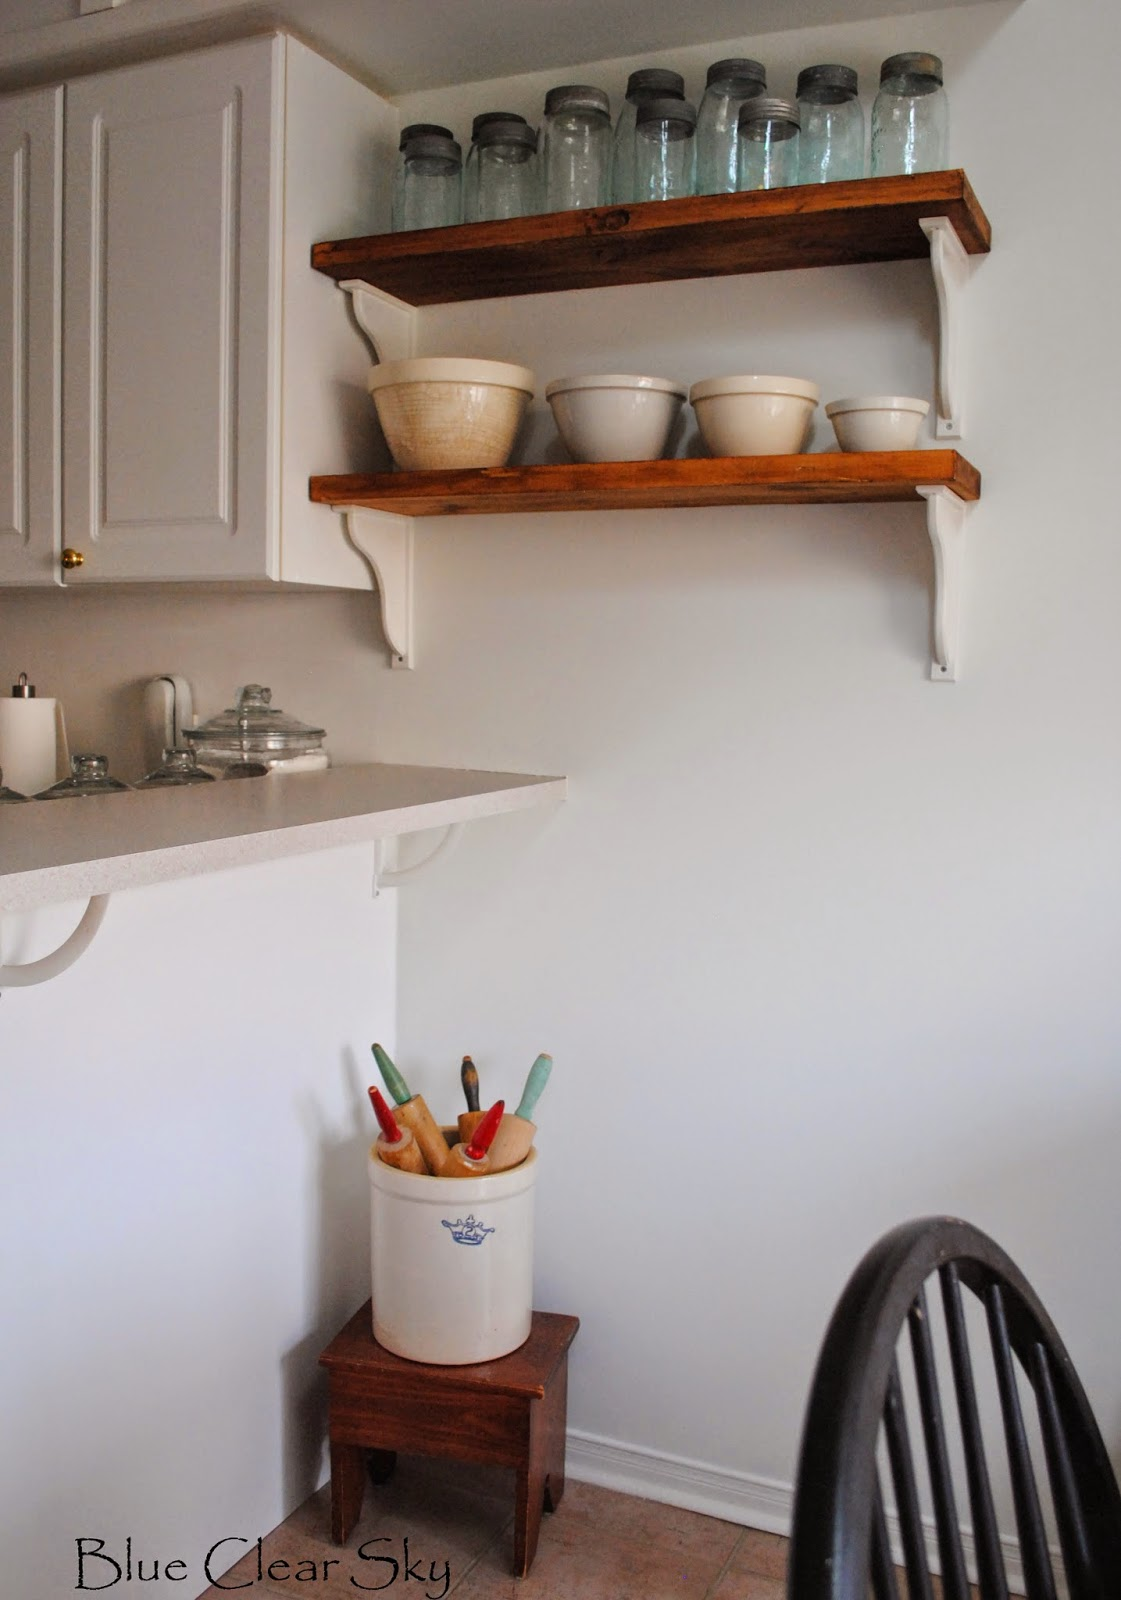 Rustic Maple: New Stained Shelves in Our Kitchen